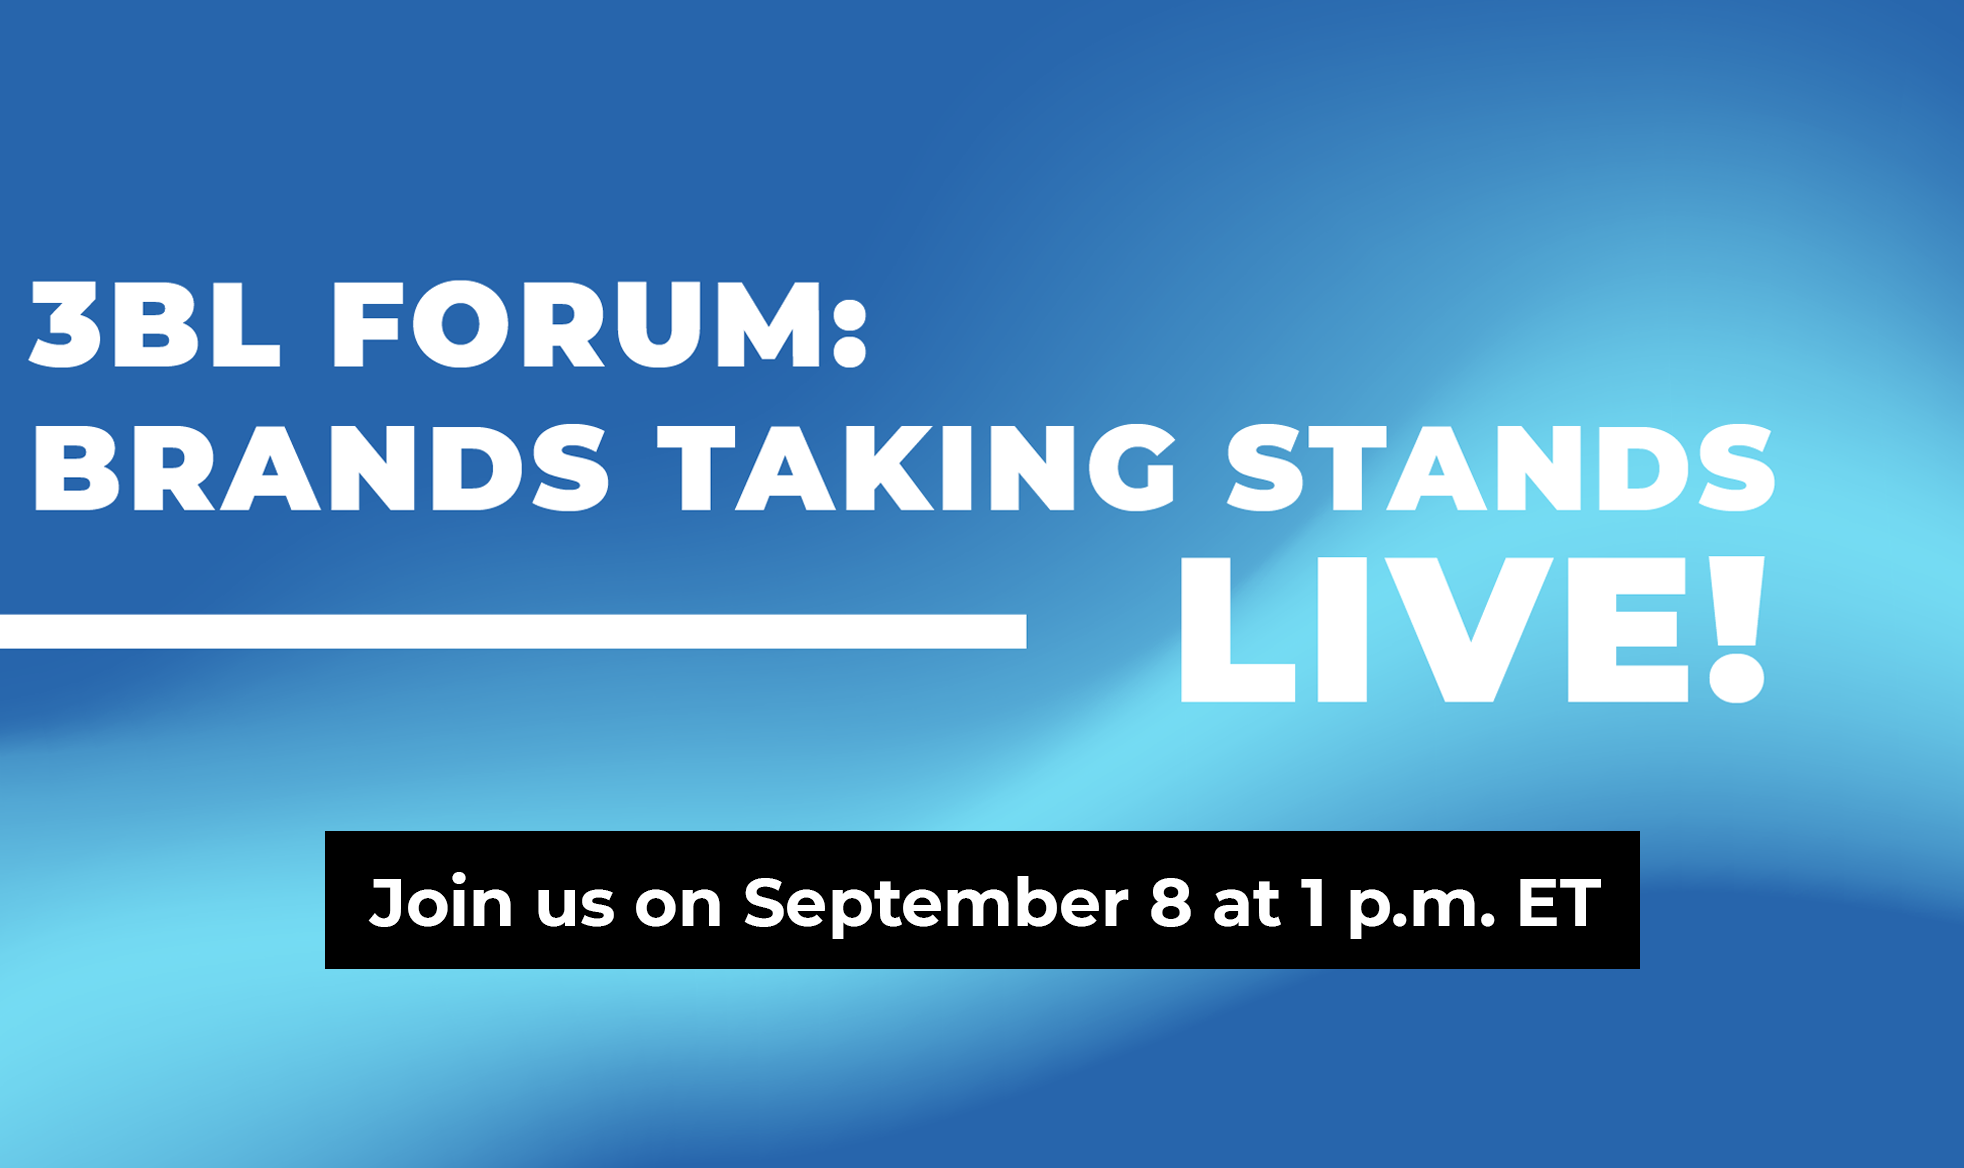 graphic reads: 3BL Forum Brands Taking Stands Live: Join us on September 8 at 1pm ET